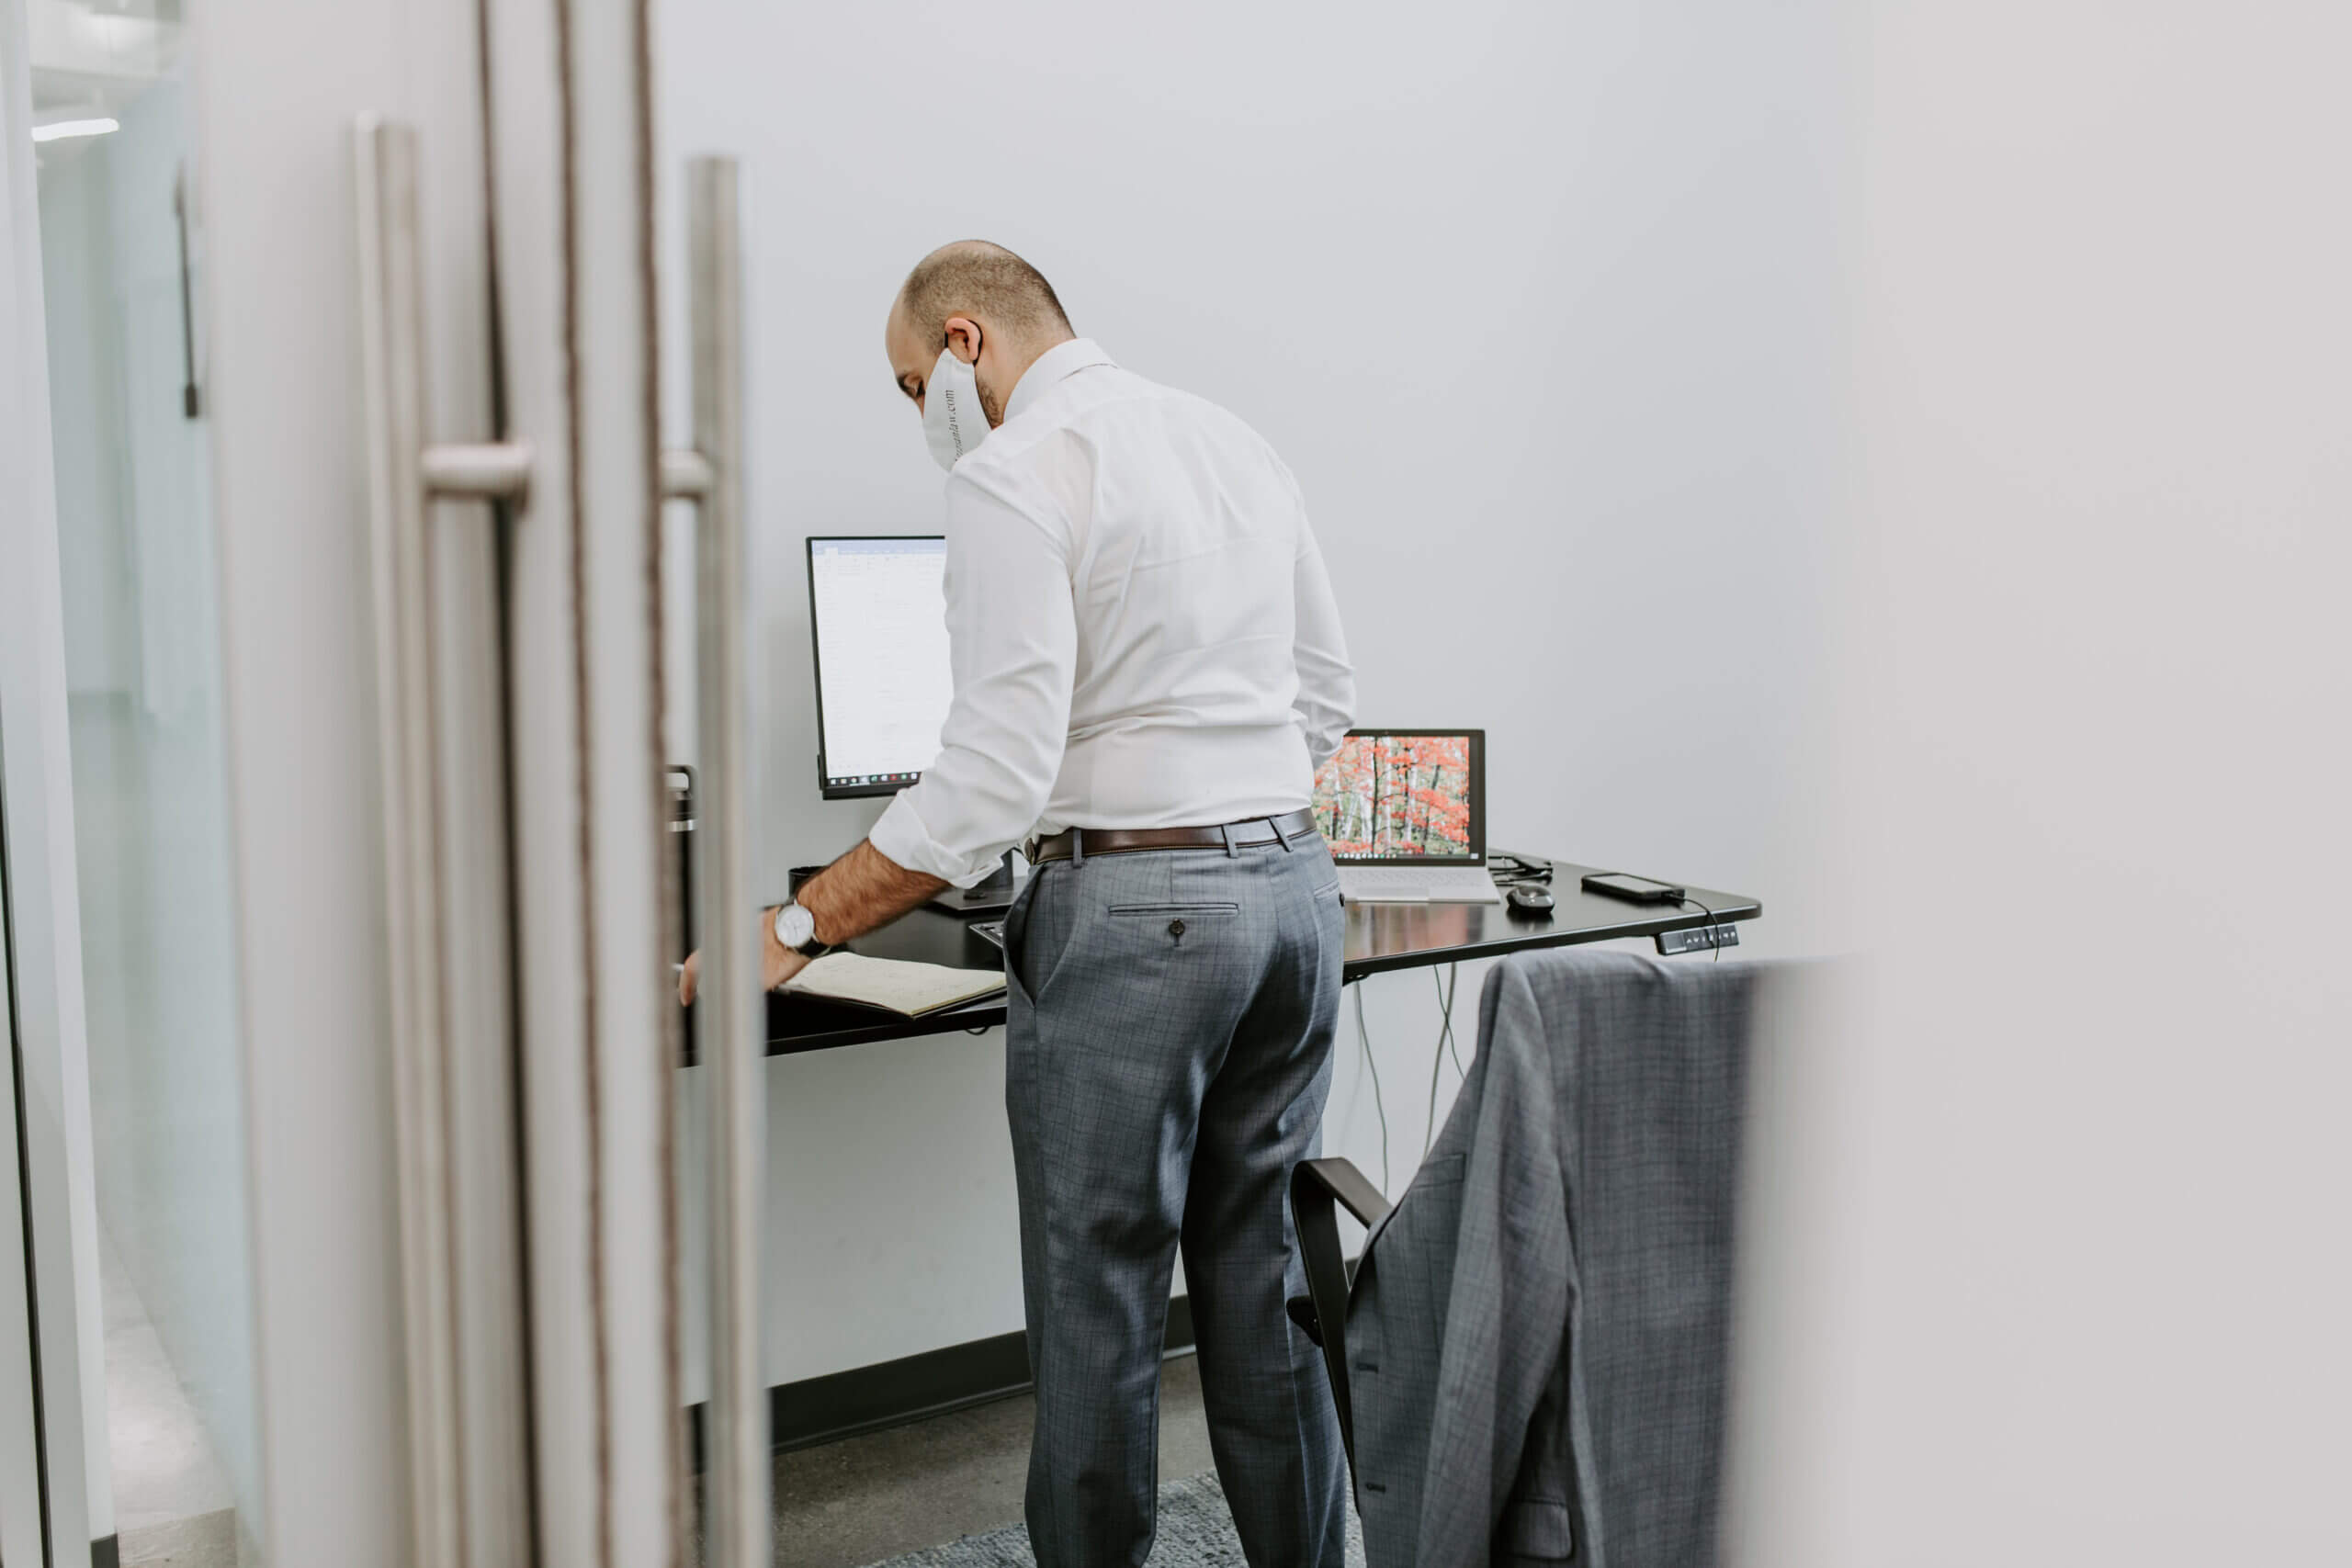 Justice HQ member working in a private office